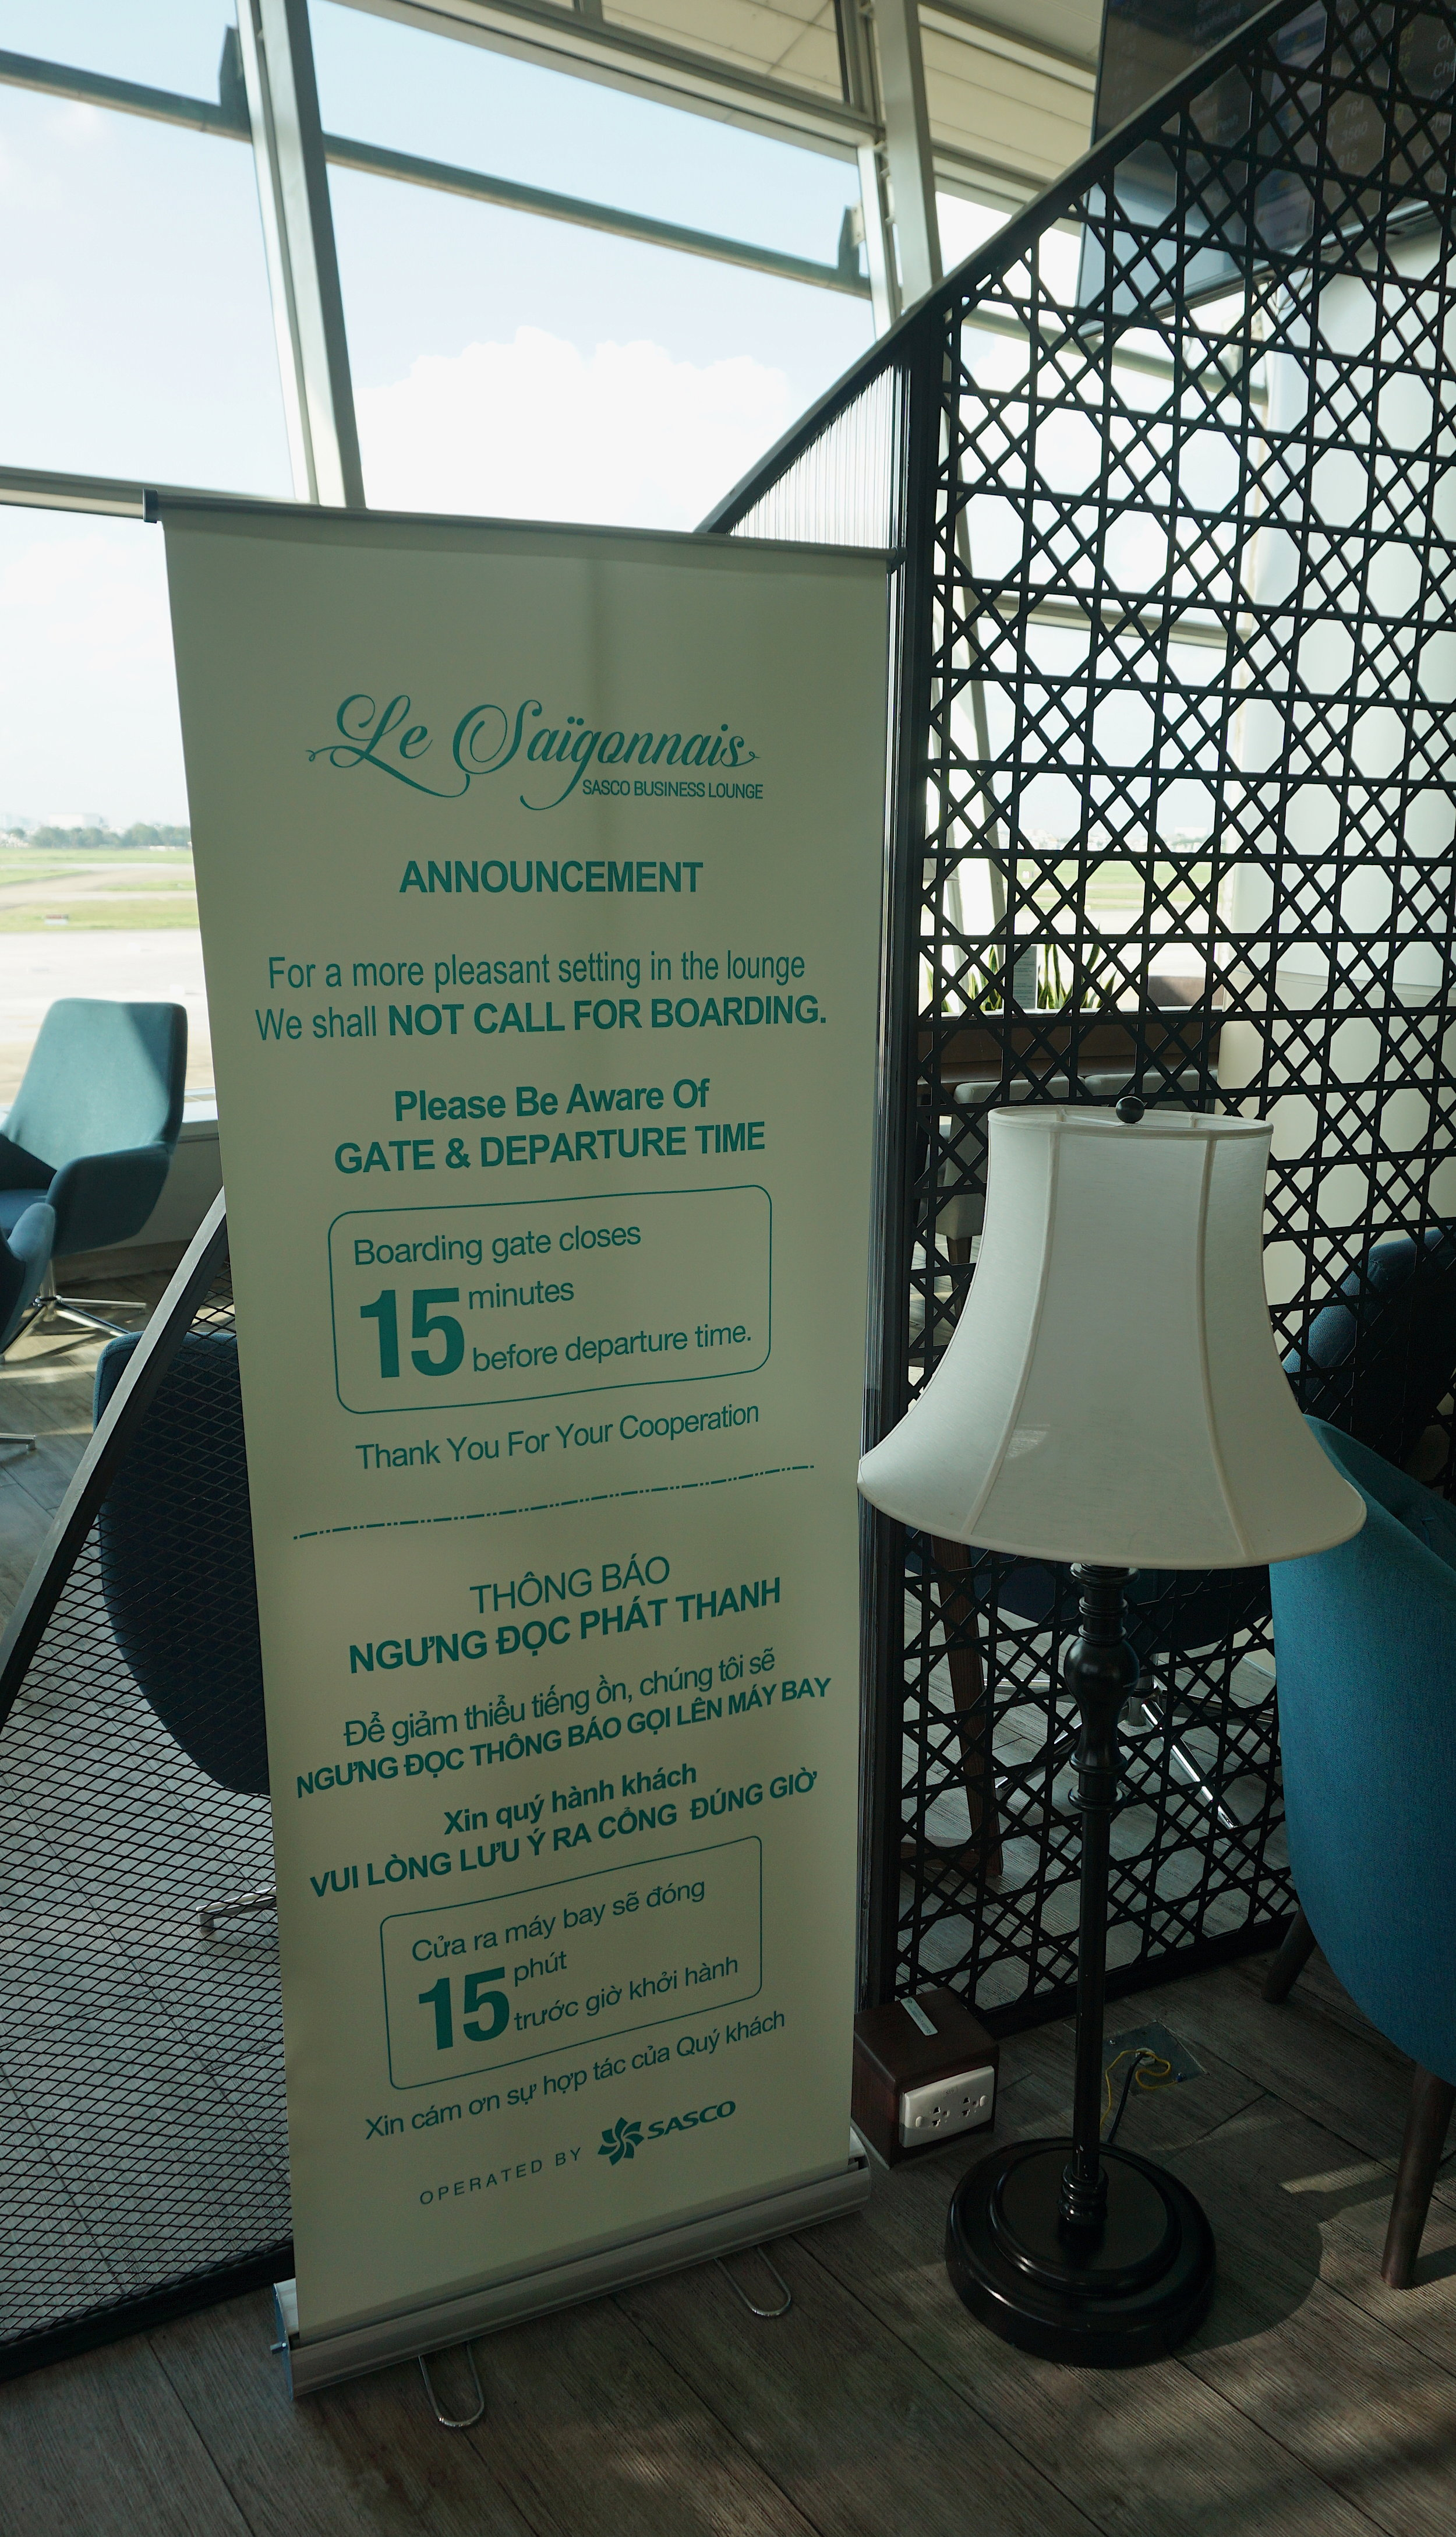 There is no announcement of boarding time in the lounge as to maintain a pleasant setting. Sounds reasonable